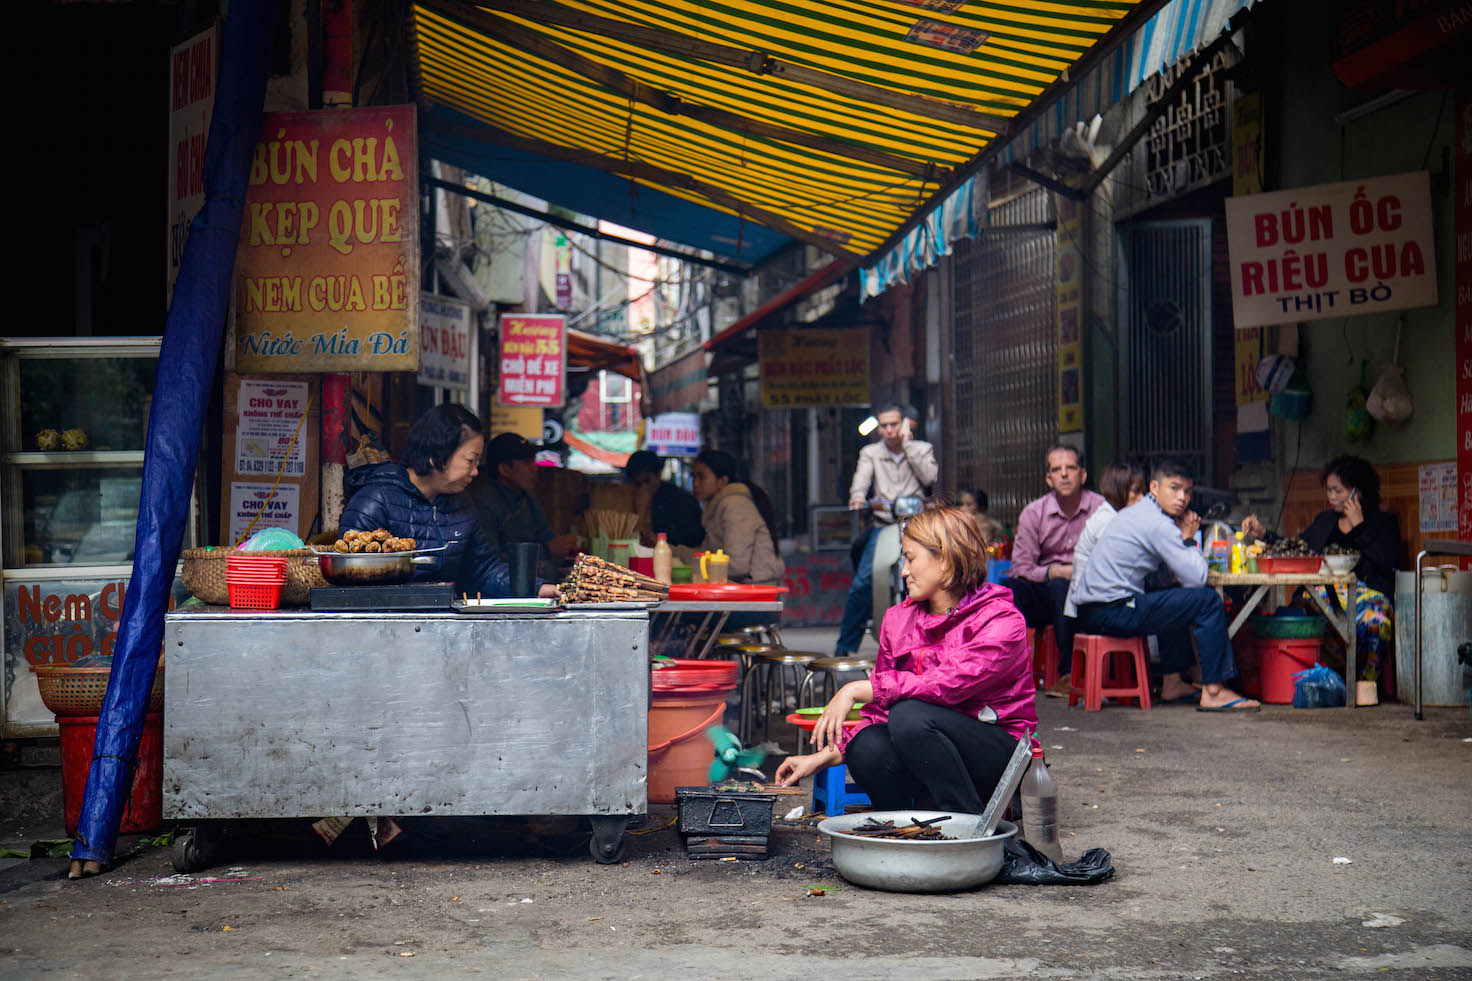 Hanoi-moments of yugen-Old Quarter Streets